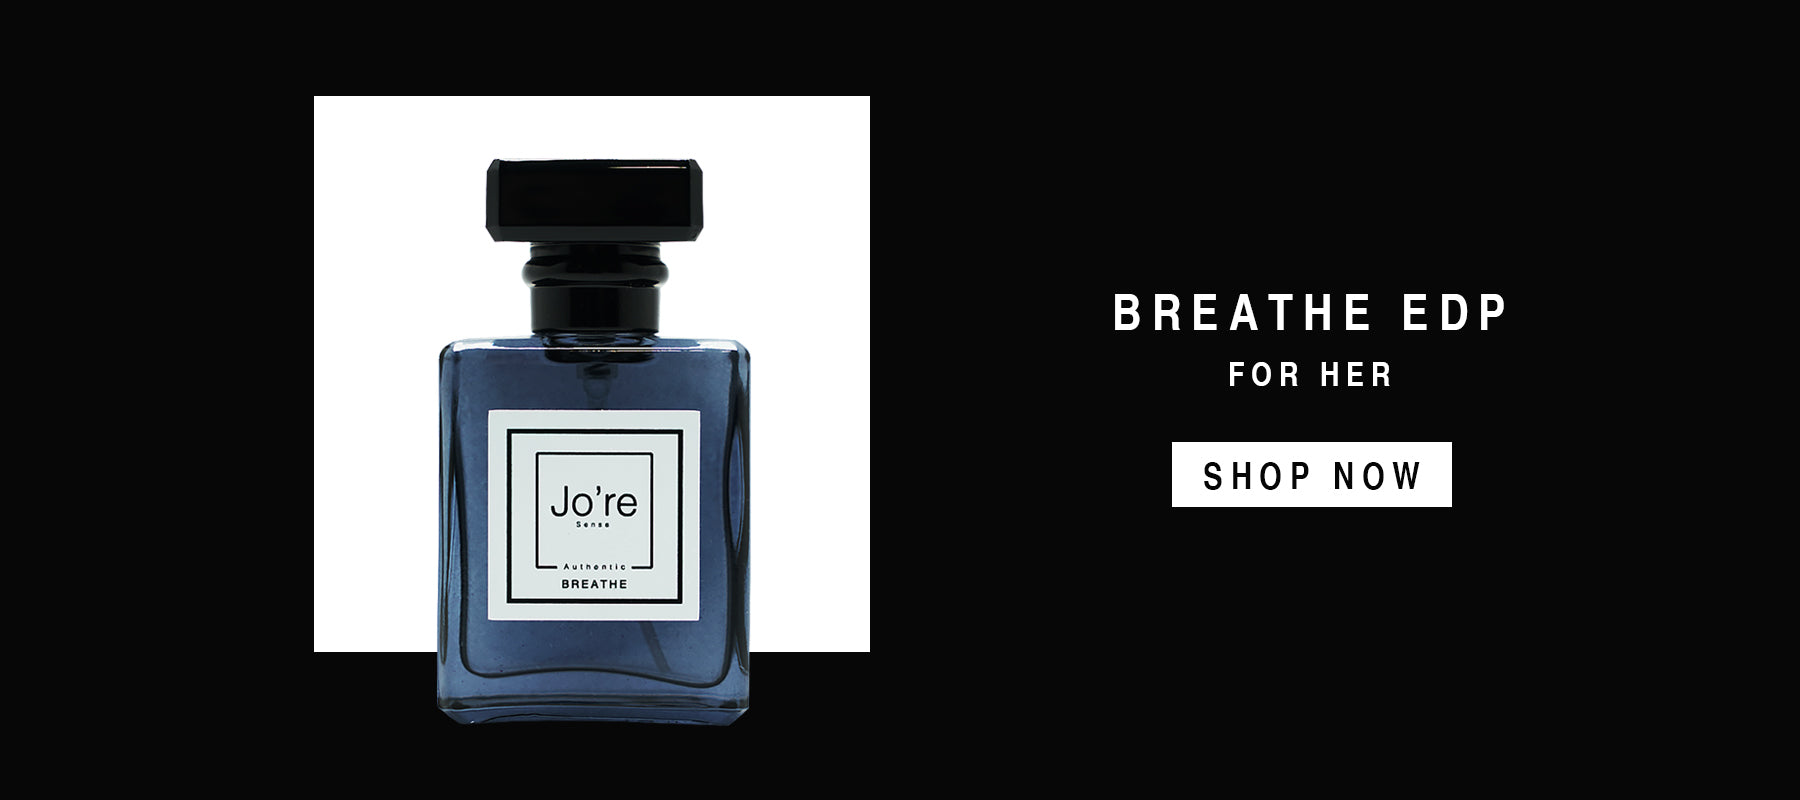 Jo're Sense The Collection Breathe Perfume For Her